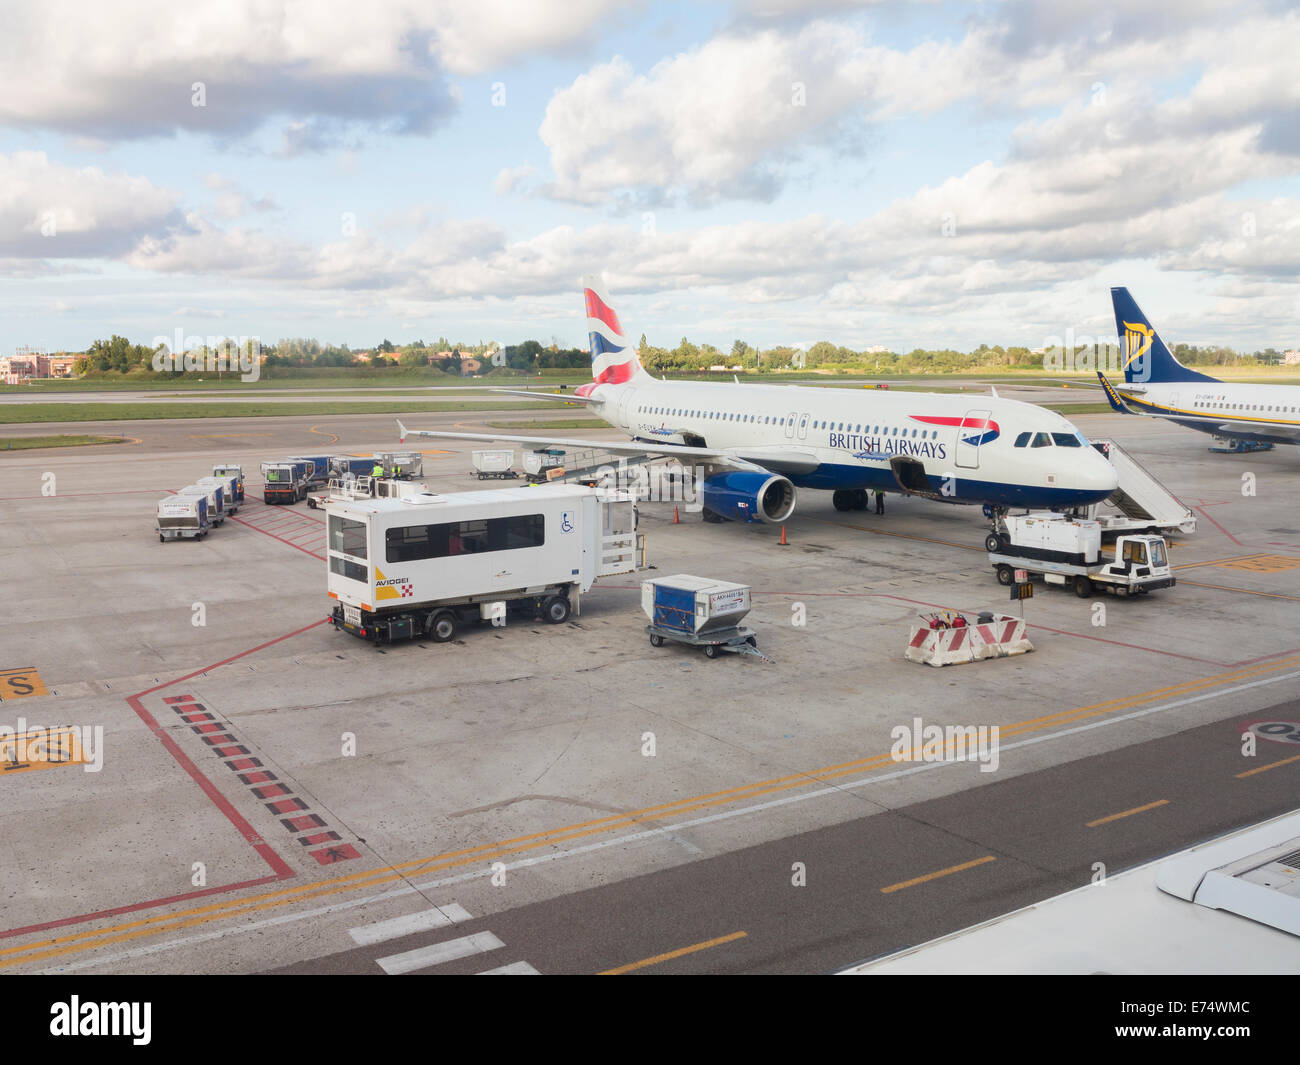 Disabled passengers boarding an aircraft via special mobile lift, Bologna, Italy - Stock Image